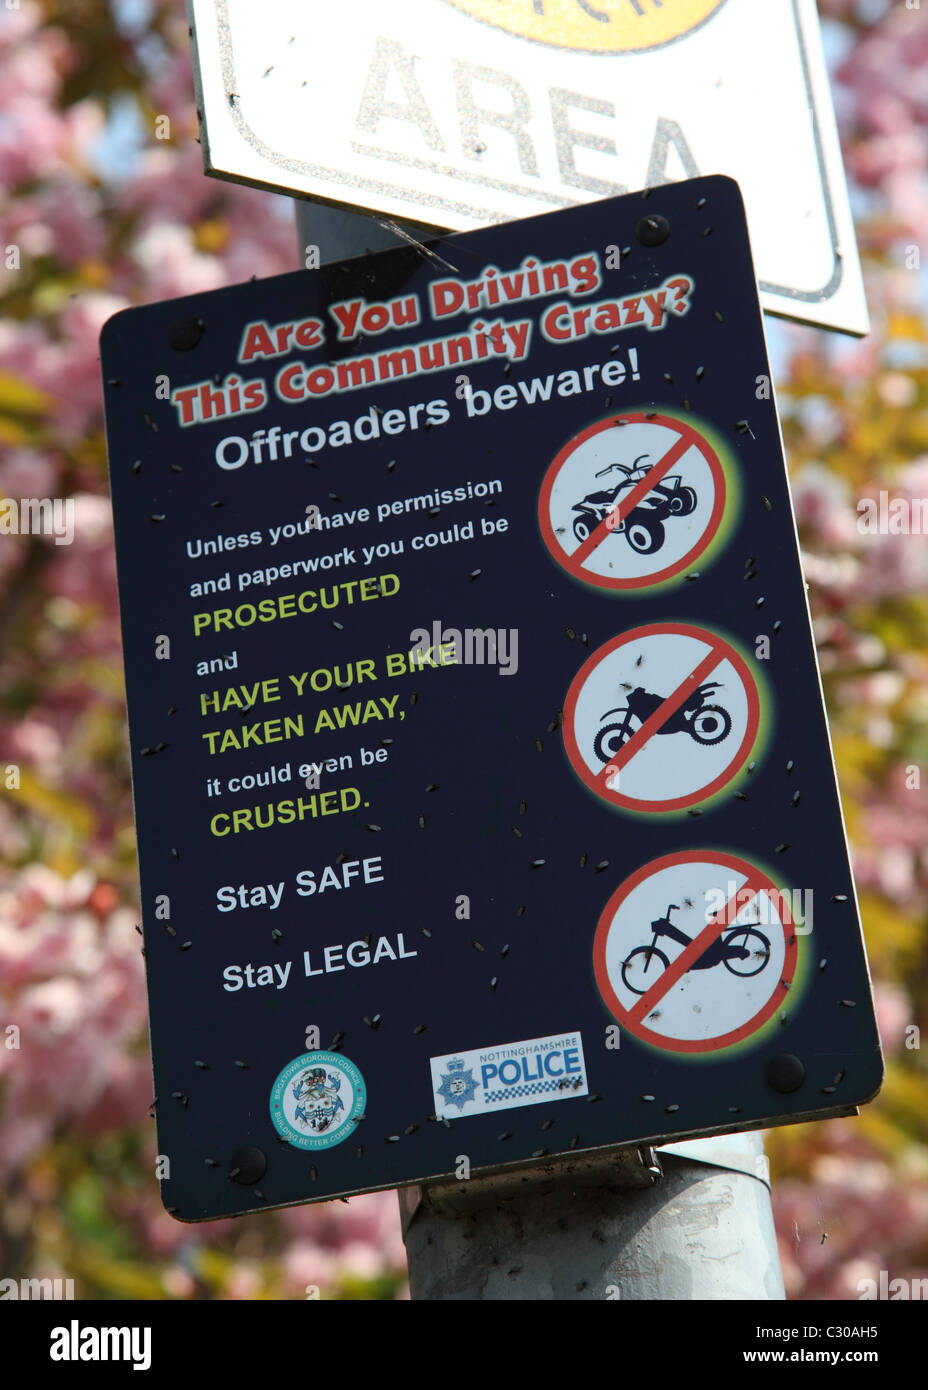 A police sign warning illegal offroad vehicles will seized and crushed. - Stock Image